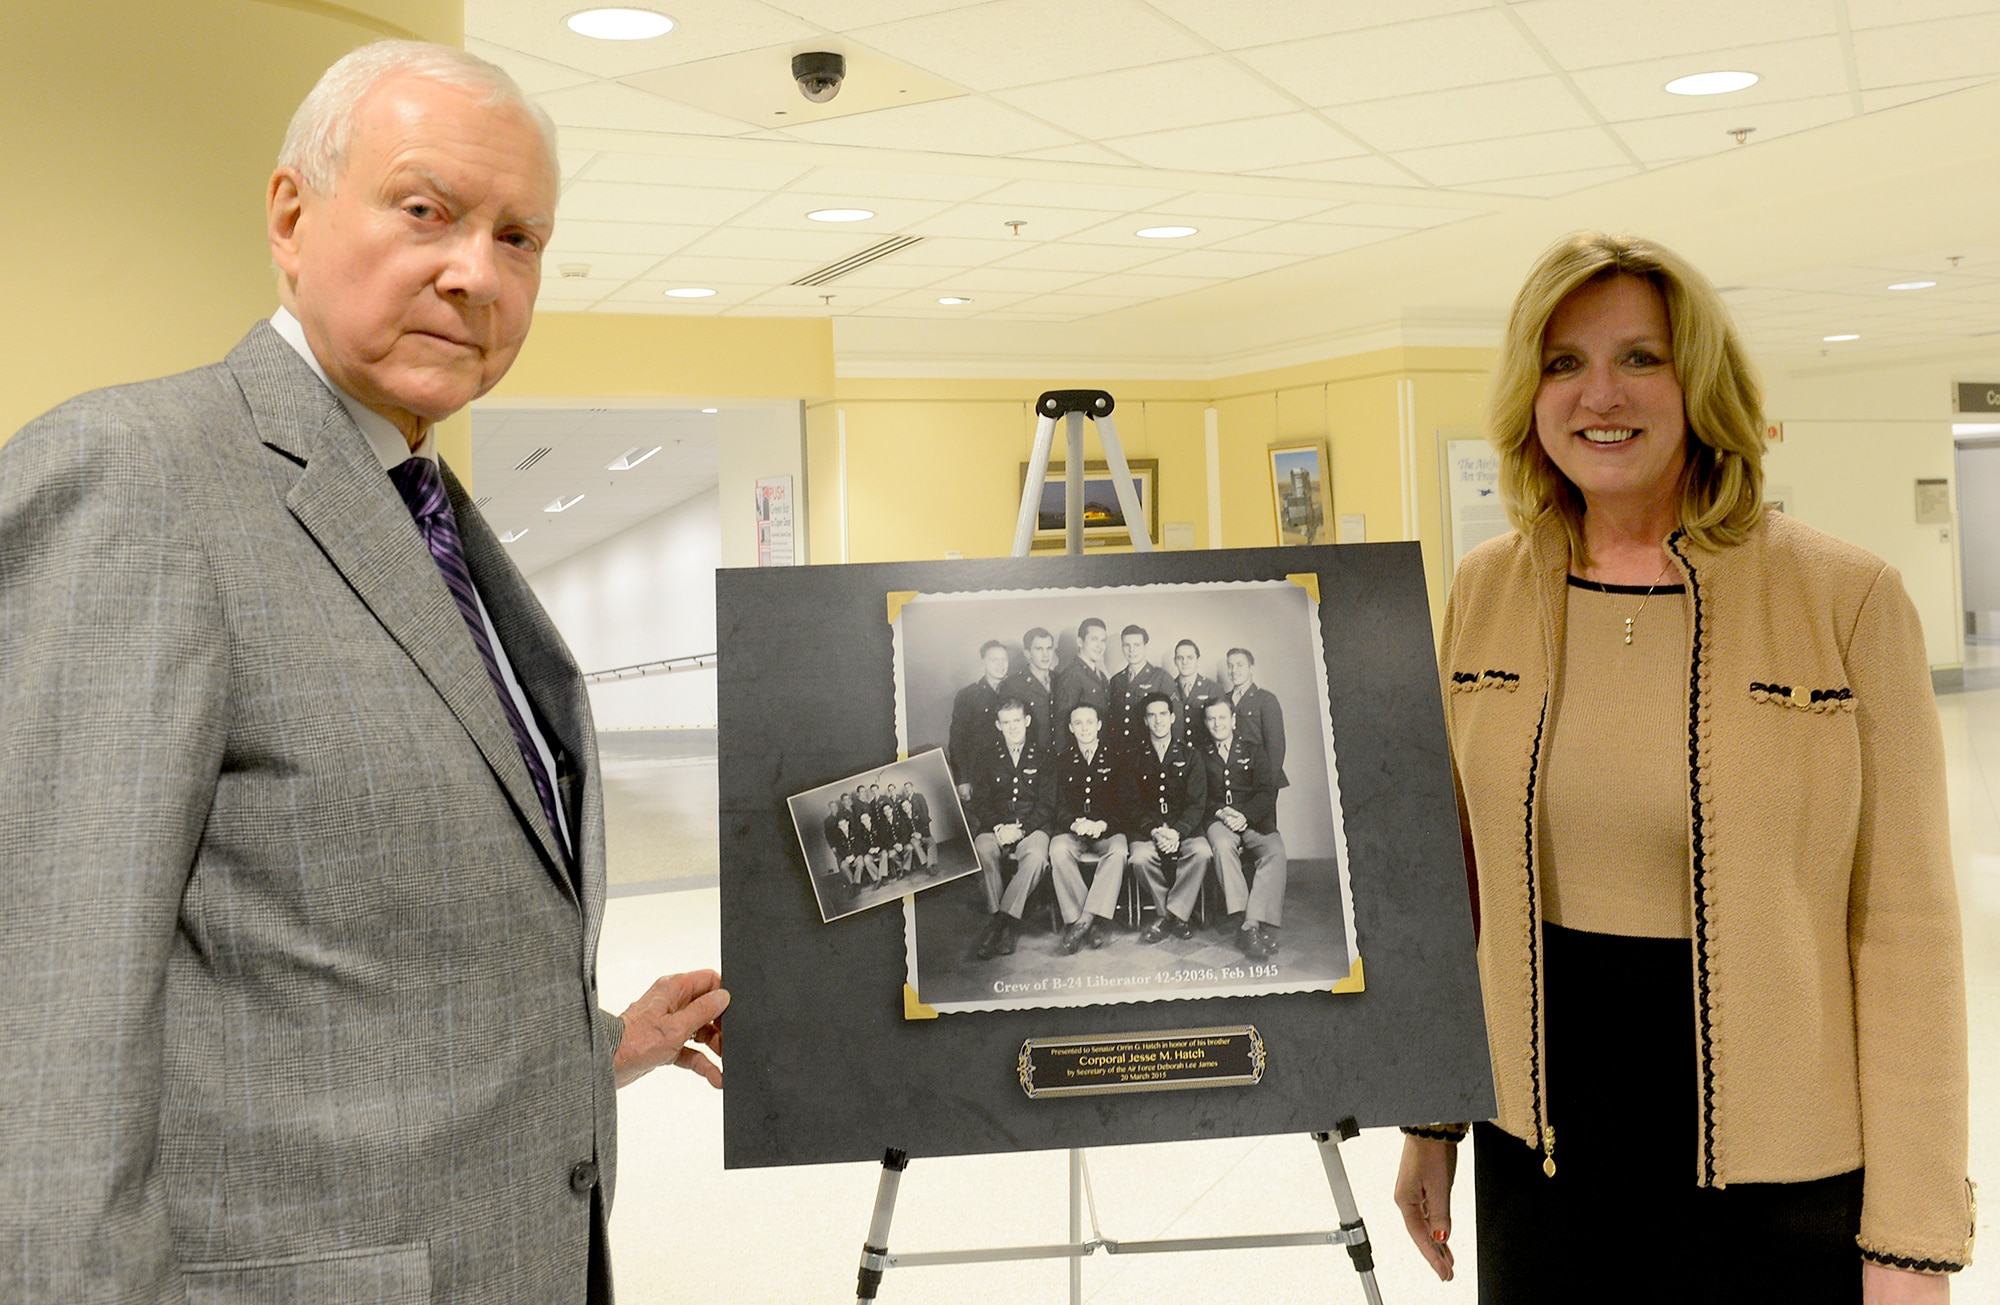 Secretary of the Air Force Deborah Lee James poses with Sen. Orrin Hatch of Utah, during a ceremony March 20, 2015, at the Pentagon in Washington D.C. James presented Hatch with two shadow boxes to honor the service of his brother, Cpl. Jesse Hatch, who died with his crew during a mission in World War II. Cpl. Hatch and his crew (pictured) were assigned to the 451st Bombardment Group, 725th Bomb Squadron. (U.S. Air Force photo/Scott M. Ash)